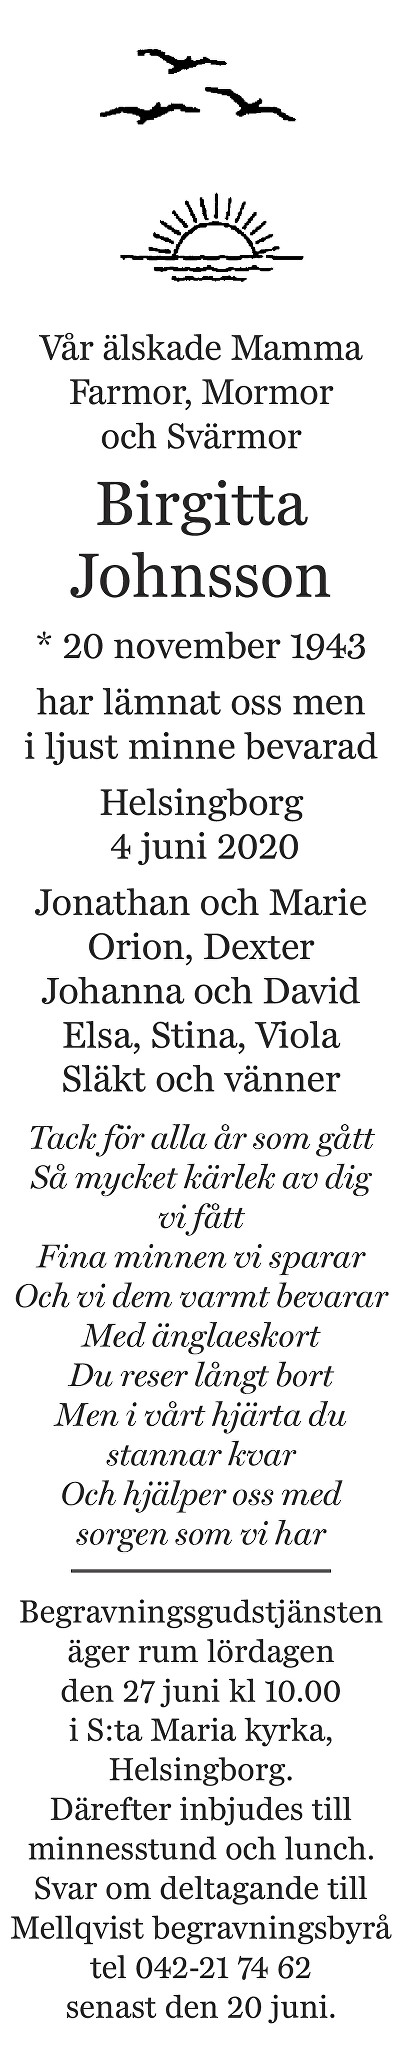 Birgitta Johnsson Death notice